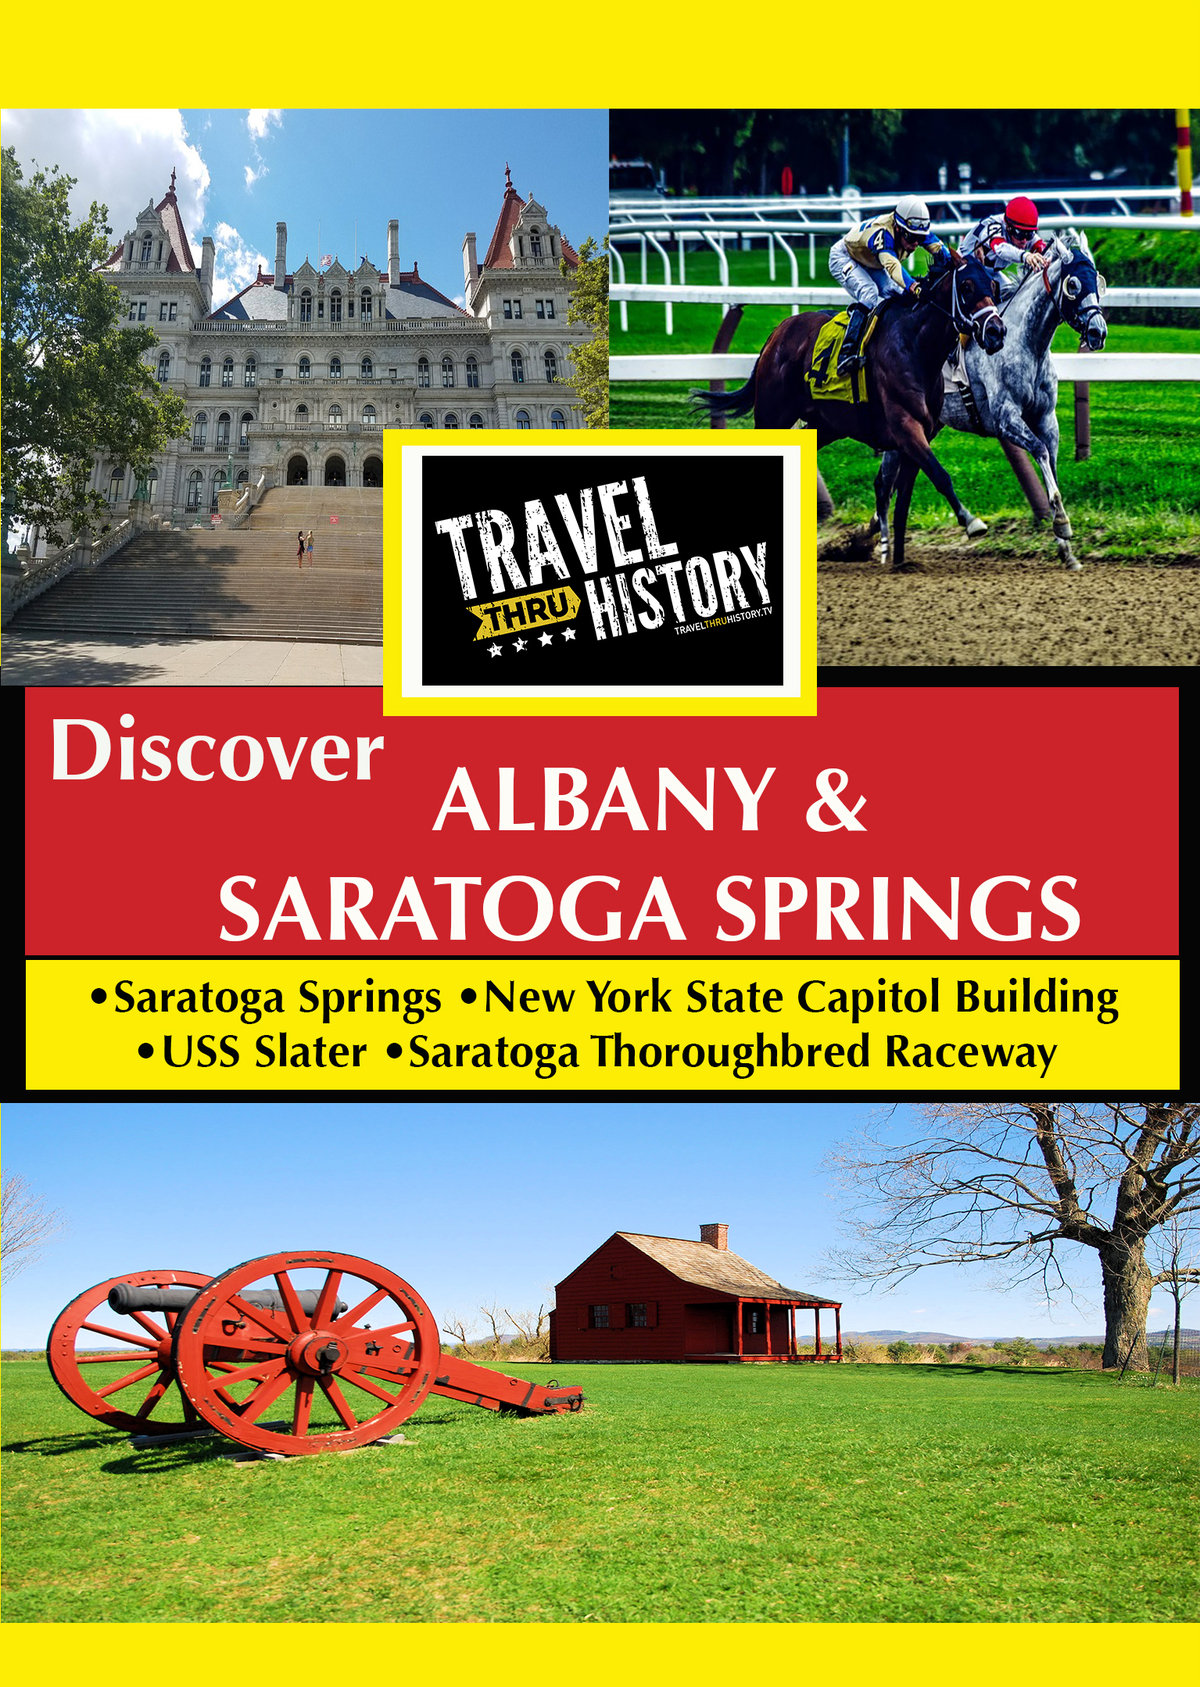 T8976 - Discover Albany & Saratoga Springs